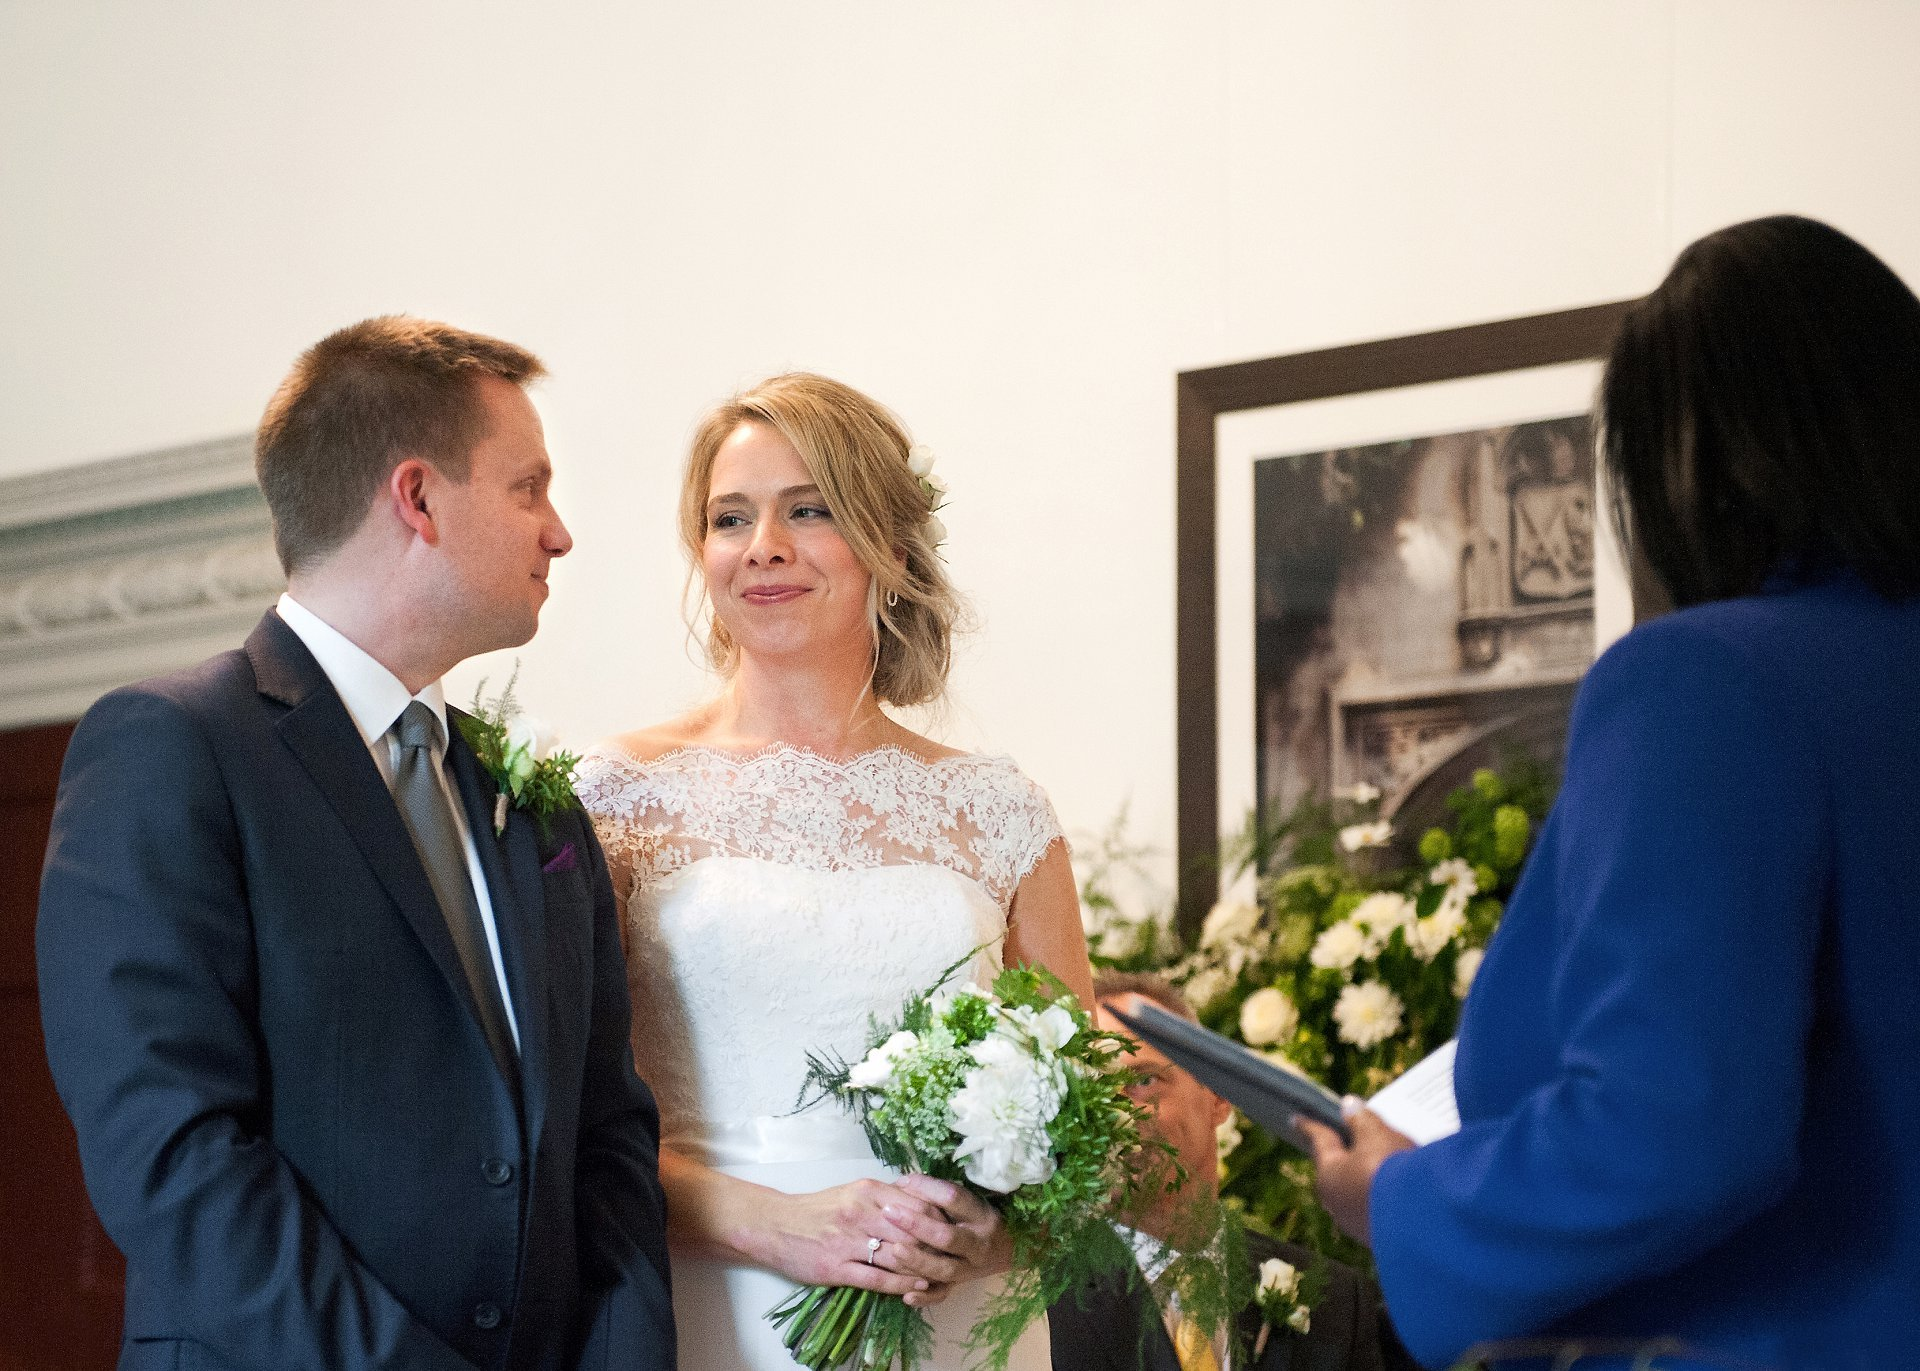 The bride and groom smile at each other at the start of their Fulham Palace wedding